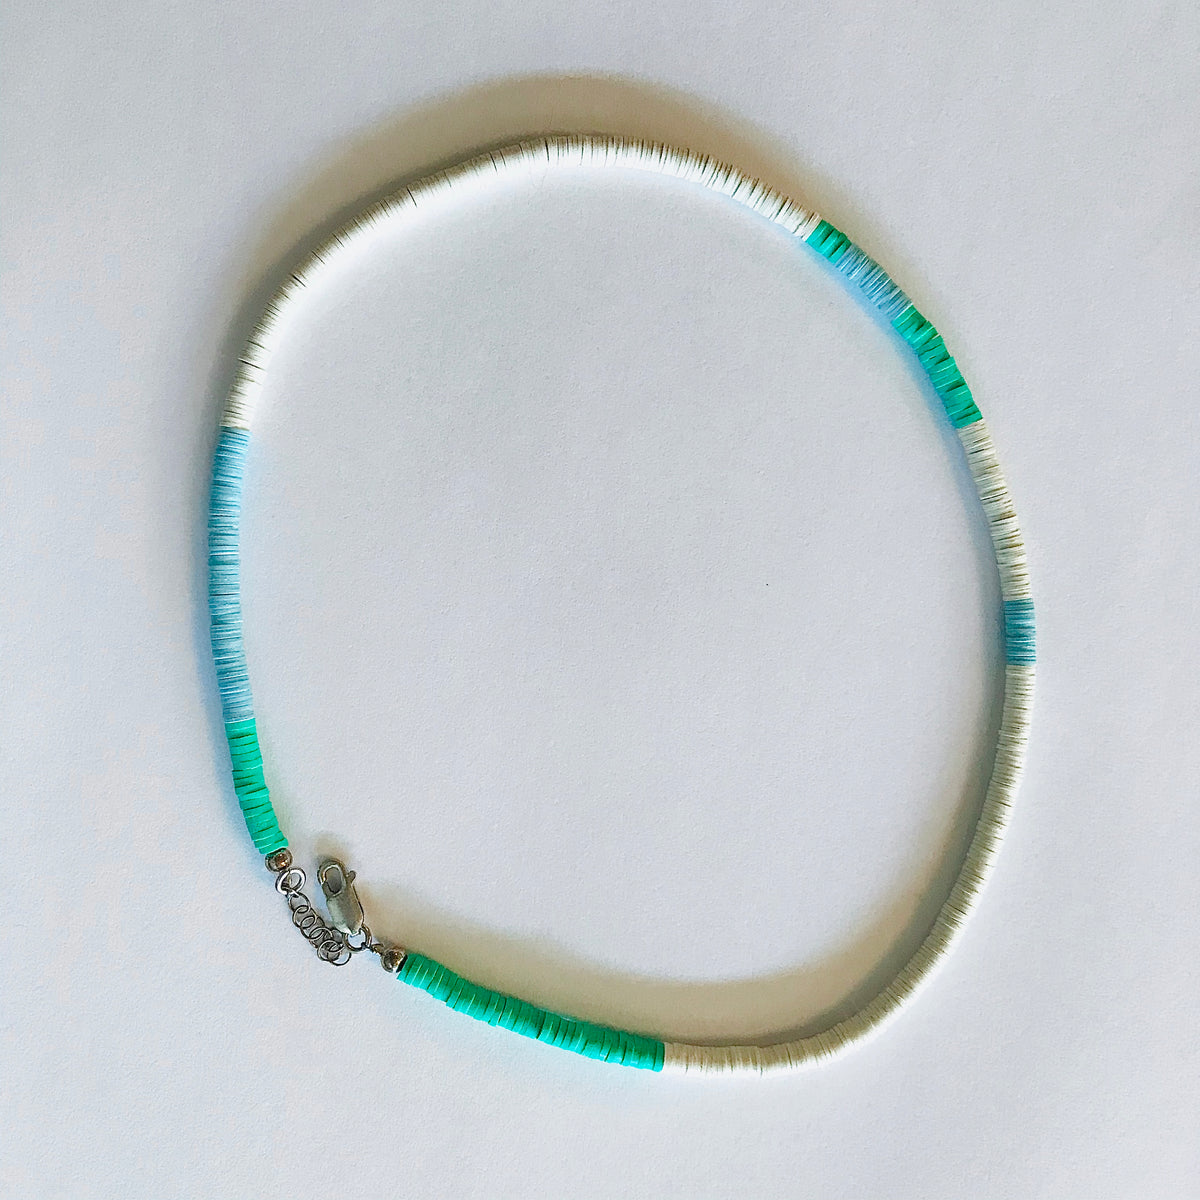 Beach necklace- green-blue/ white